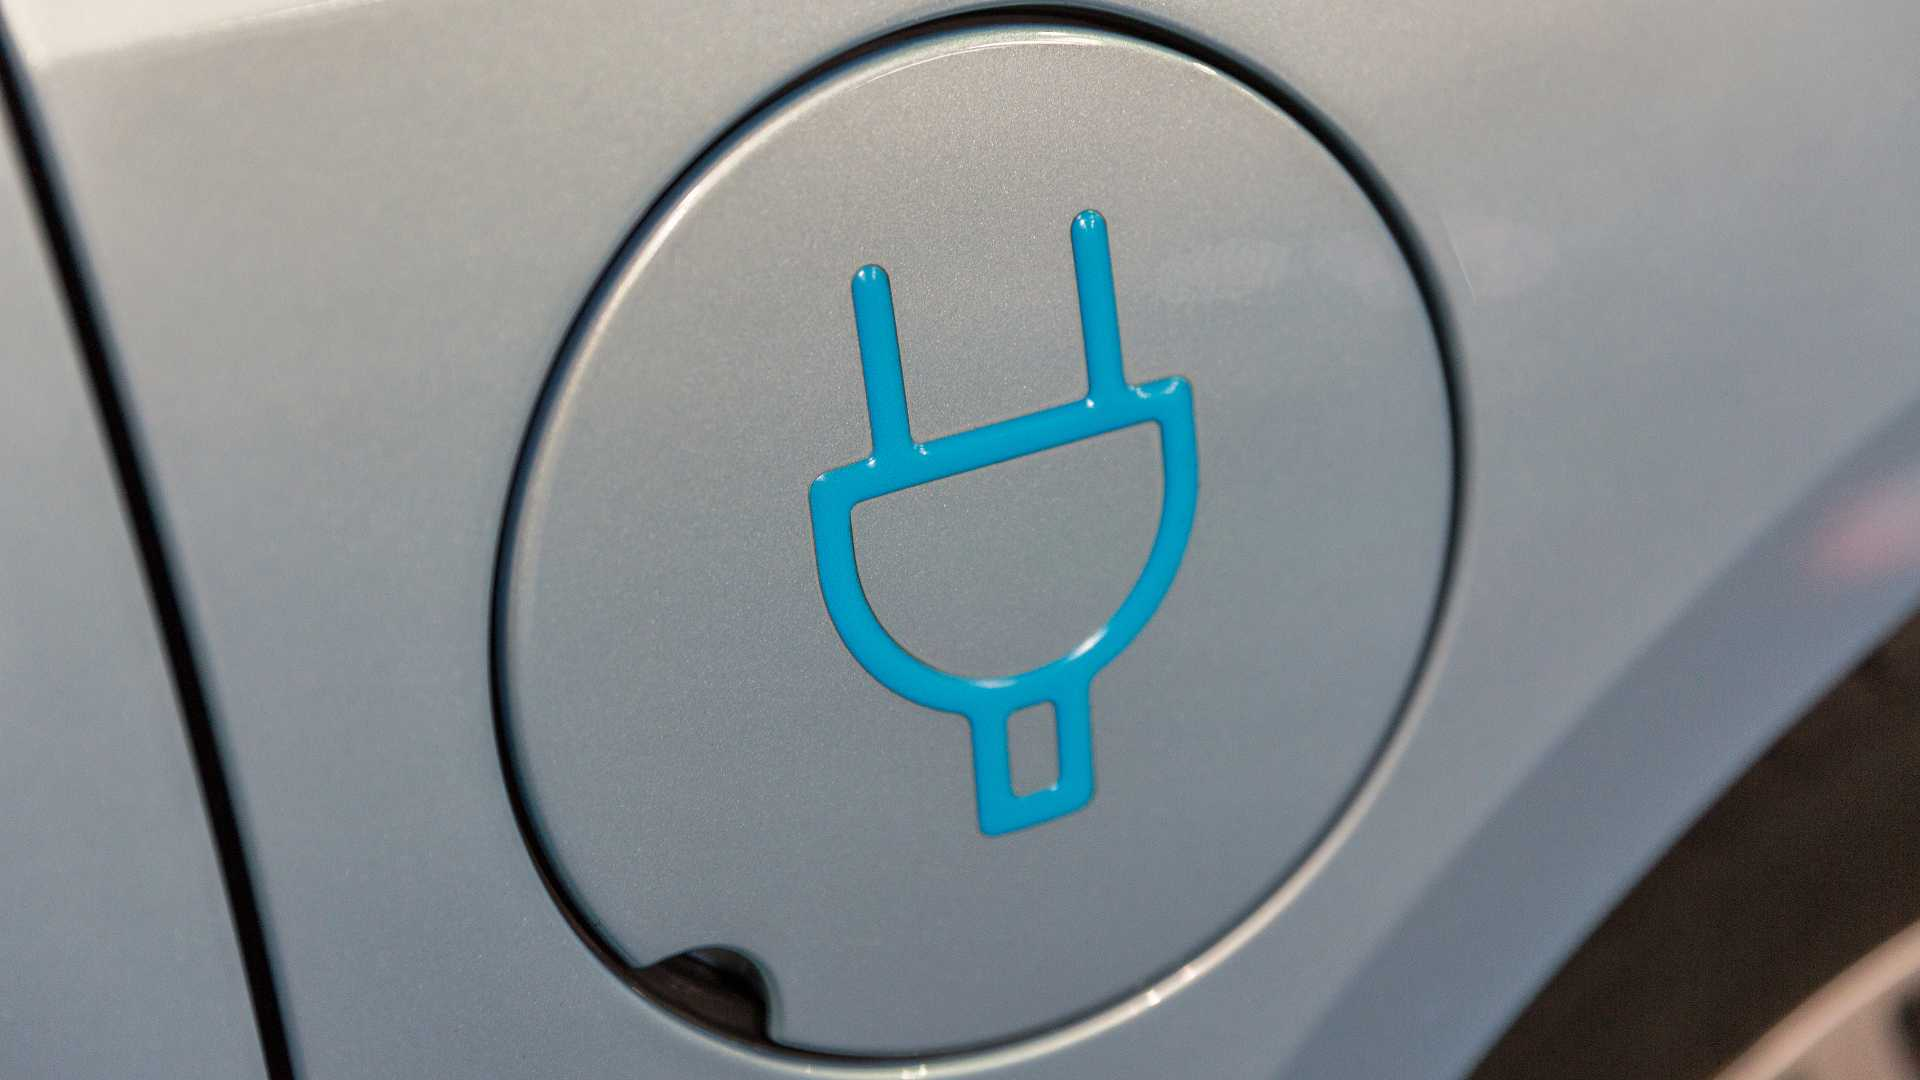 Charging symbol on electric car